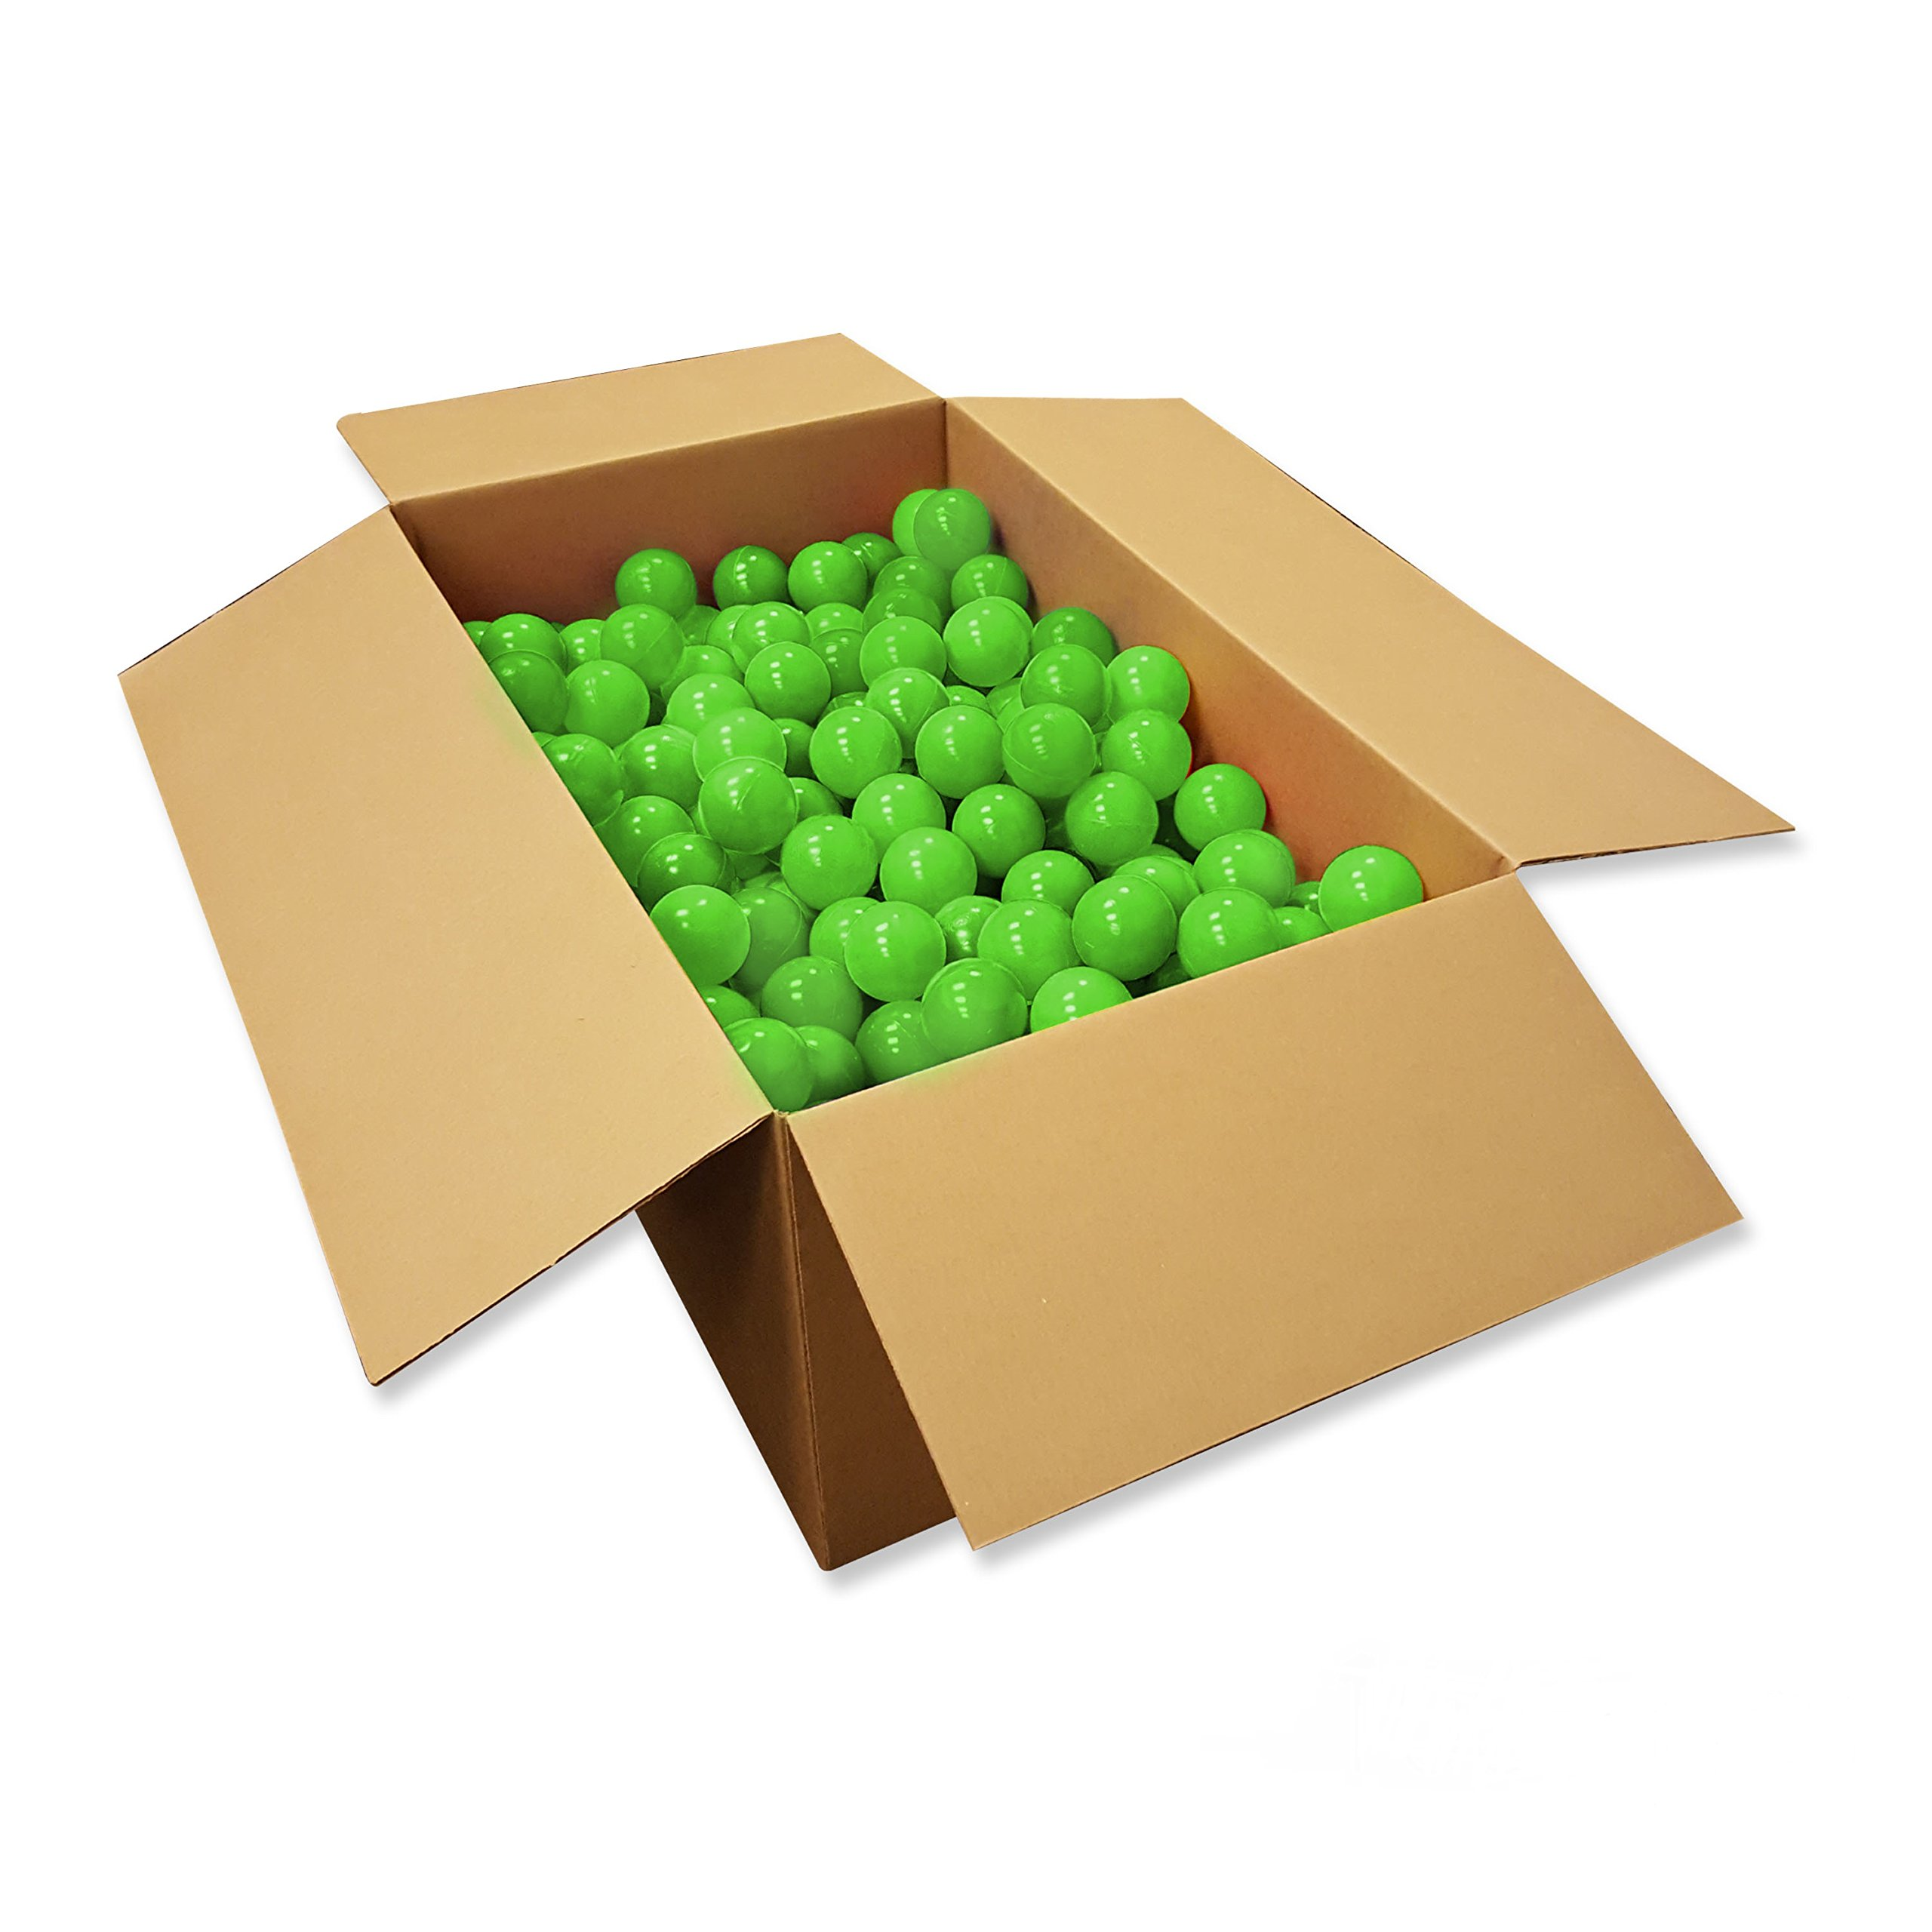 Kiddy Up Crush Resistant Play Pit Balls, Green